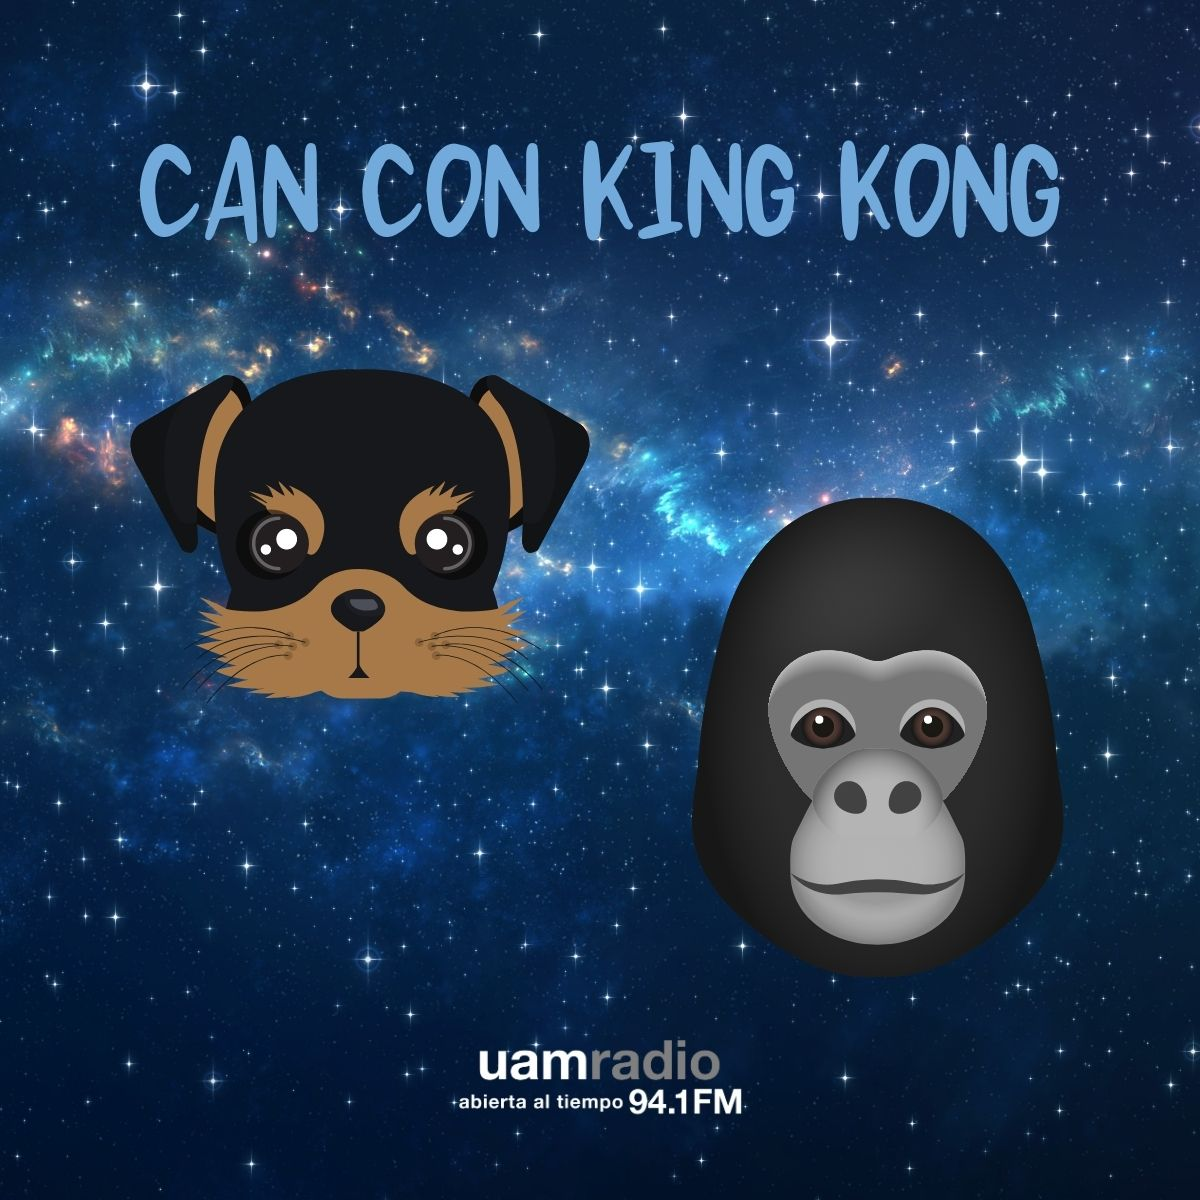 chistes can con king kong